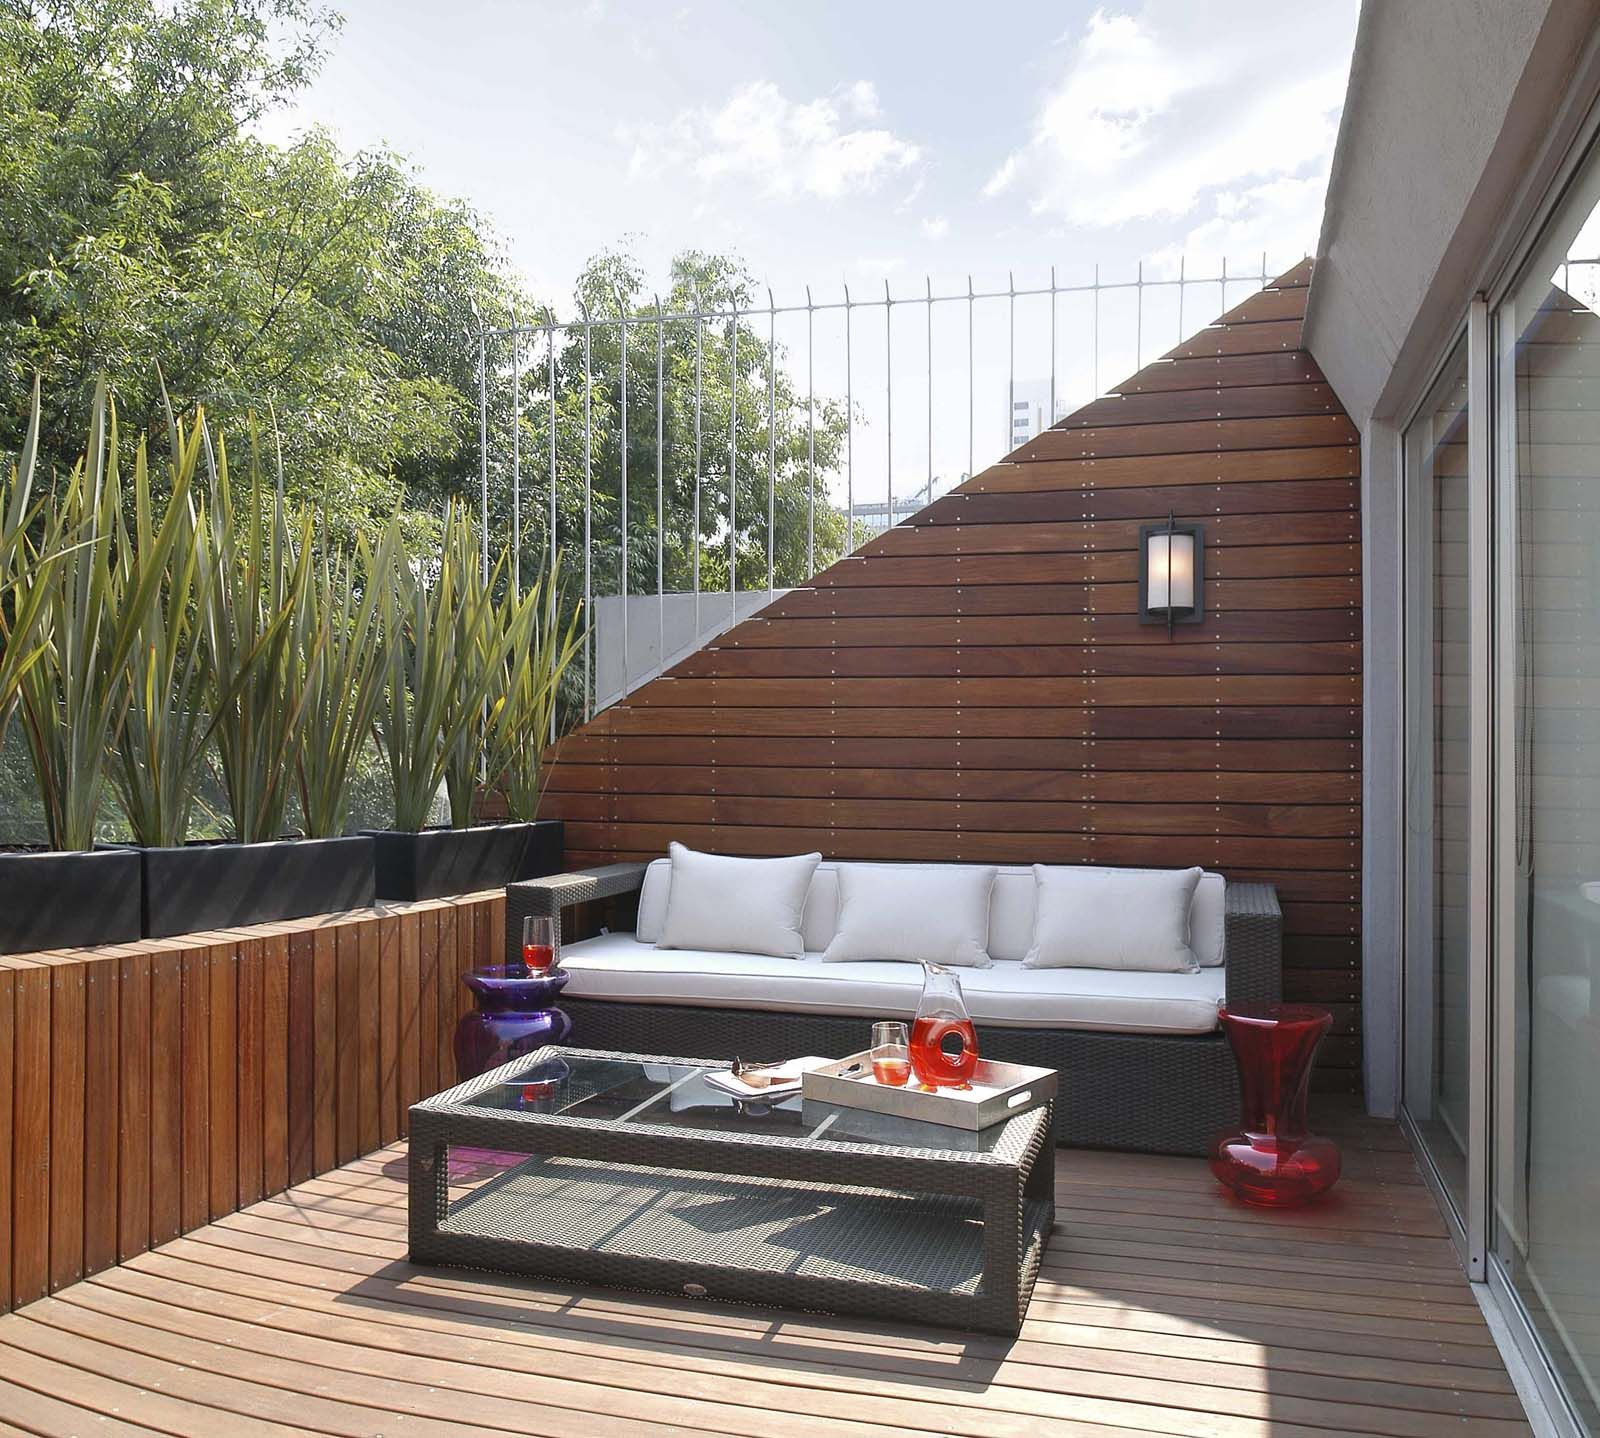 Apartment balcony ideas pictures to pin on pinterest - Find This Pin And More On Architectural Design Apartment